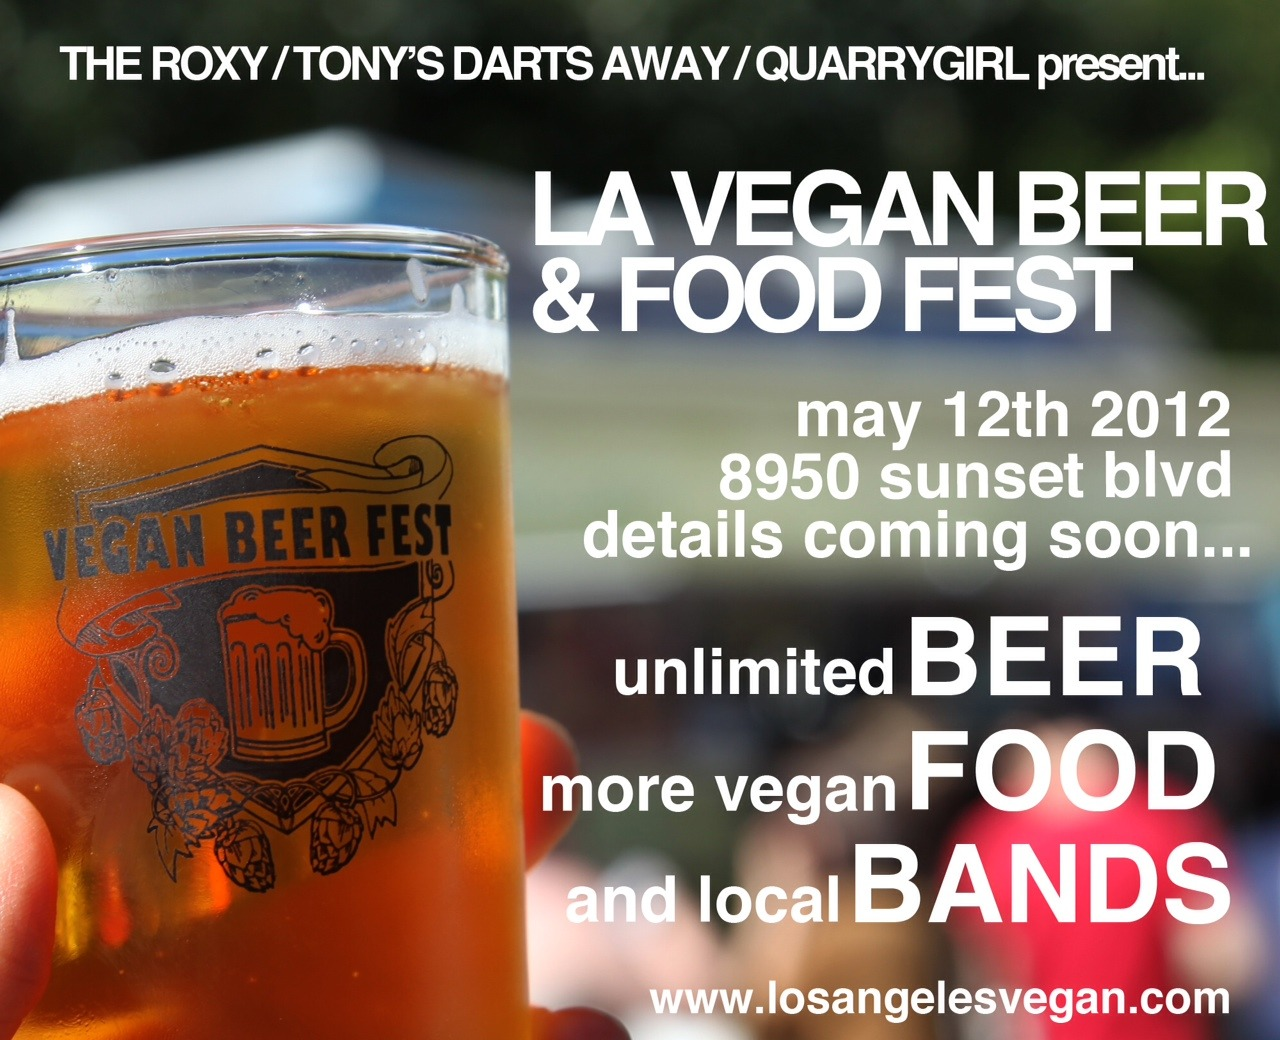 quarrygirl:  it's coming… The 3rd LA Vegan Beer & Food Festival presented by The Roxy, Tony's Darts Away and Quarrygirl!  Save the date: May 12th 2012